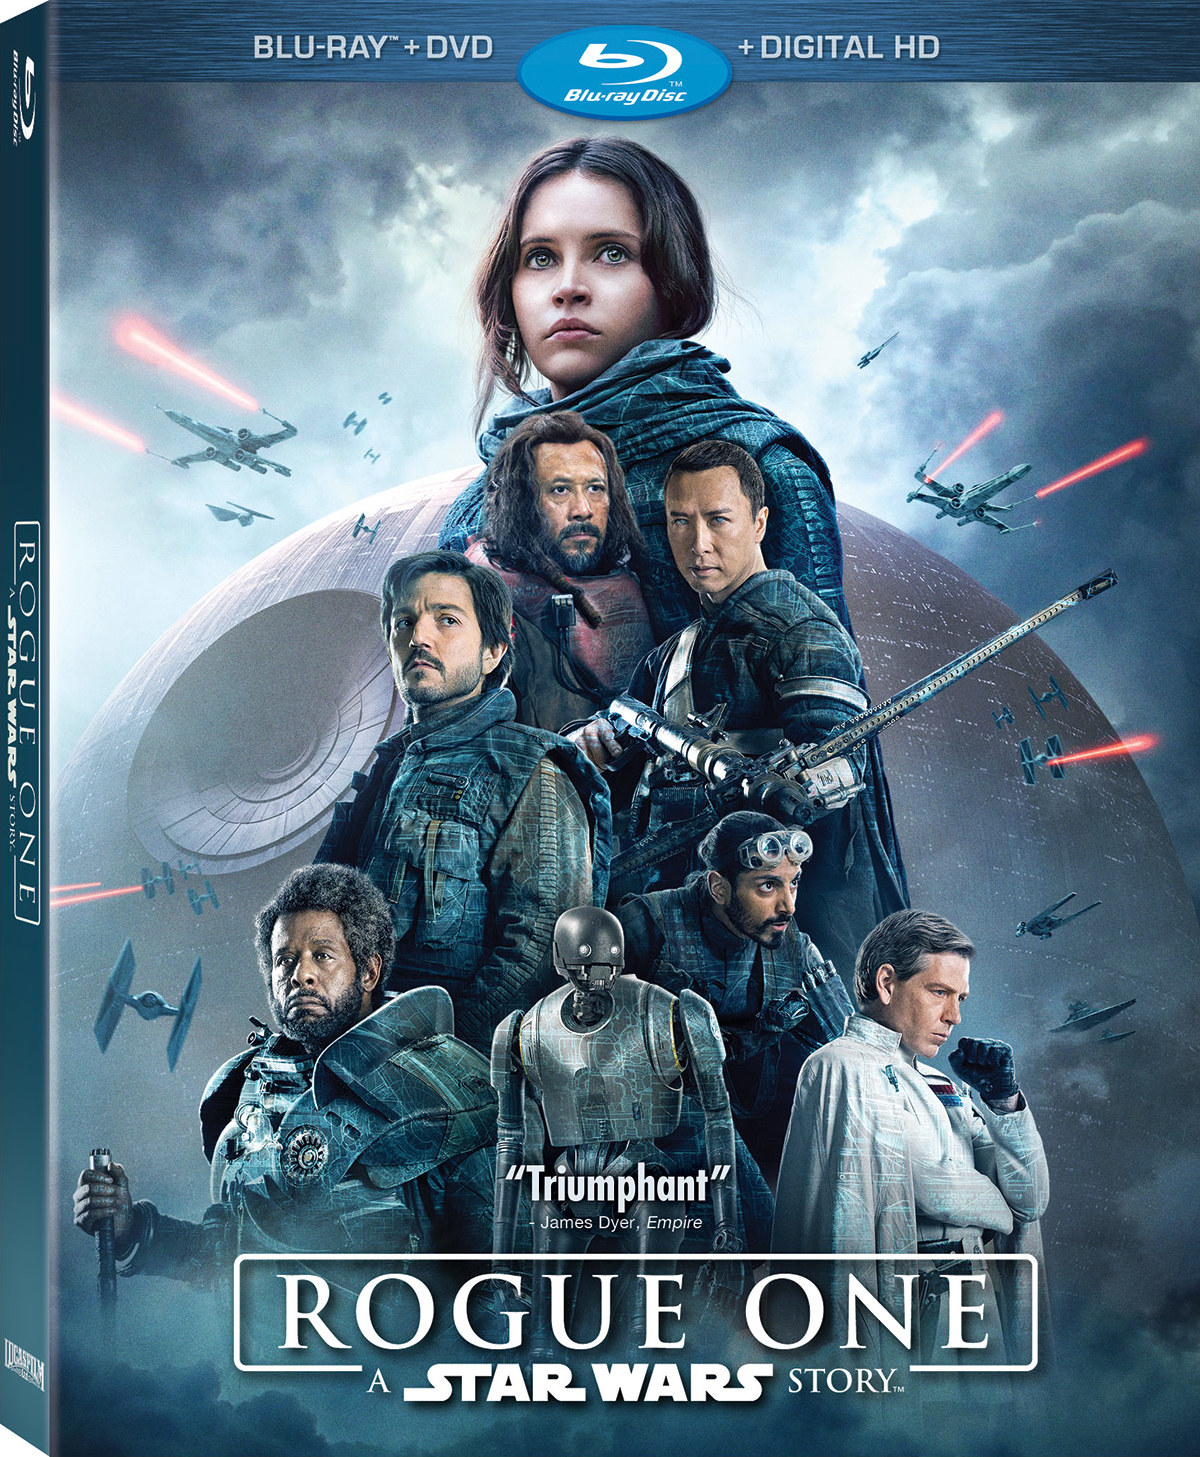 Rogue One (2016) poster image